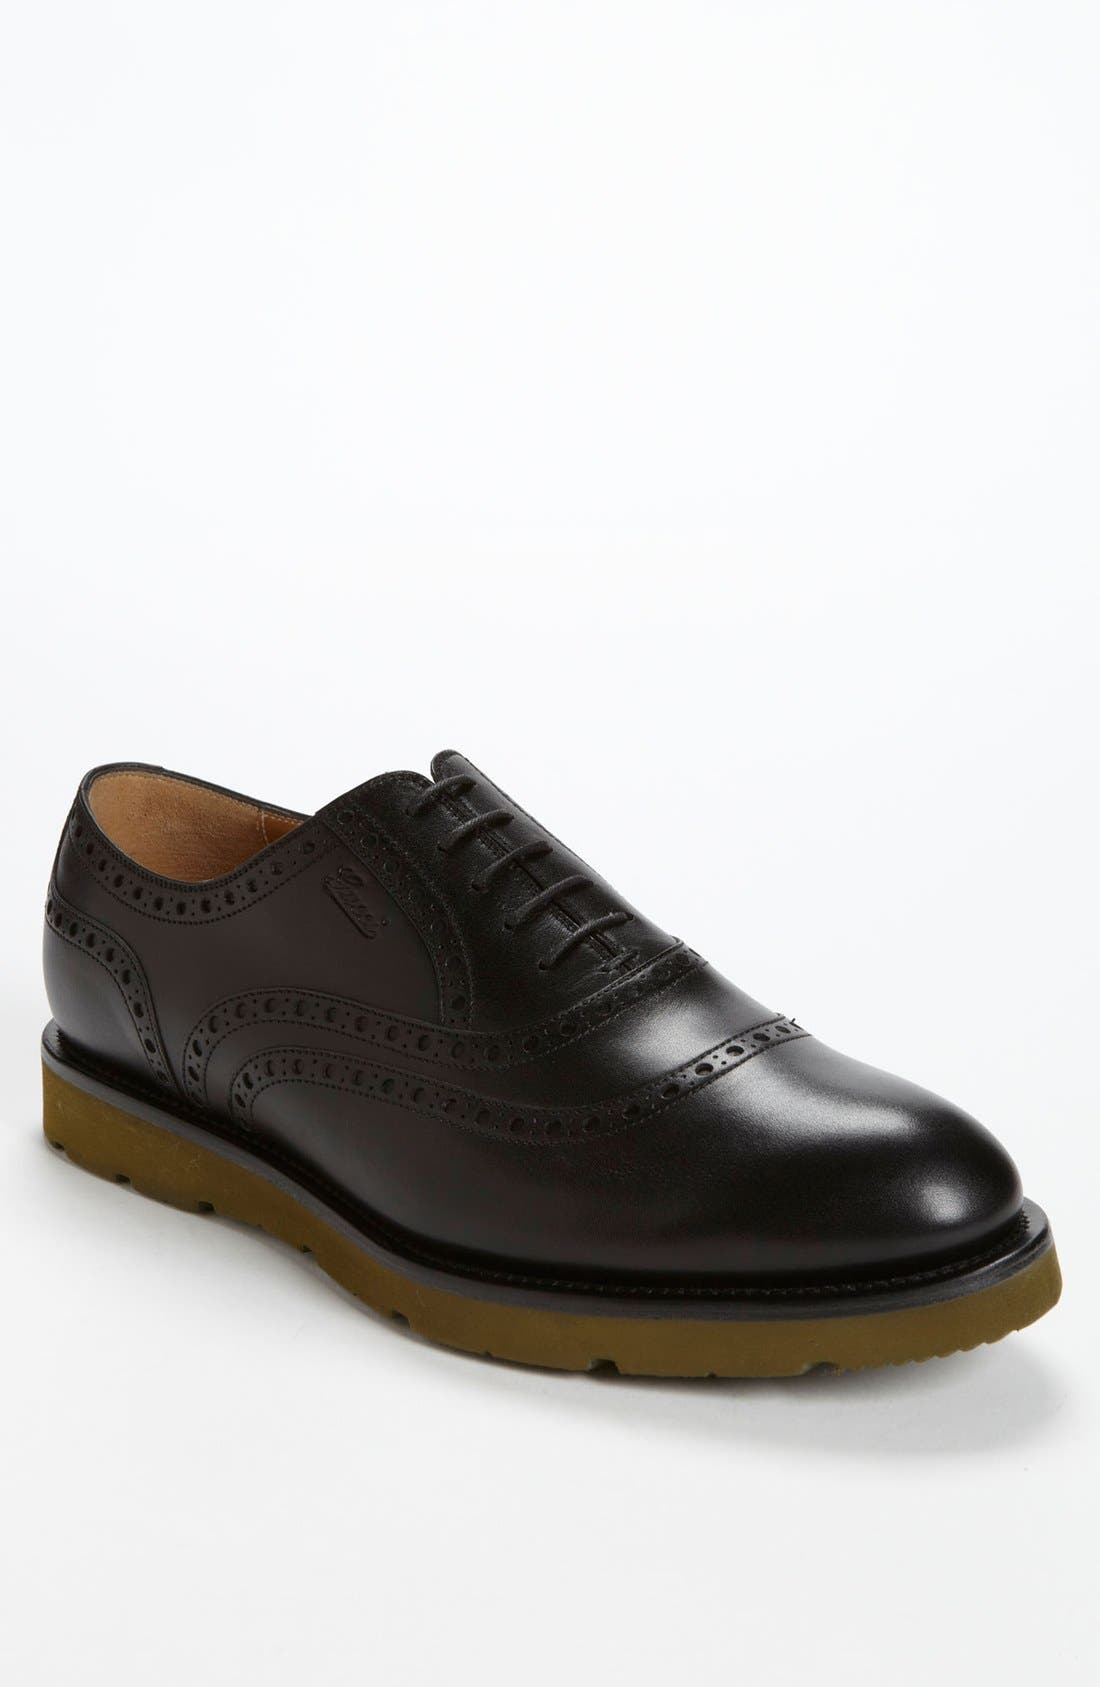 Alternate Image 1 Selected - Gucci 'Fenis' Oxford